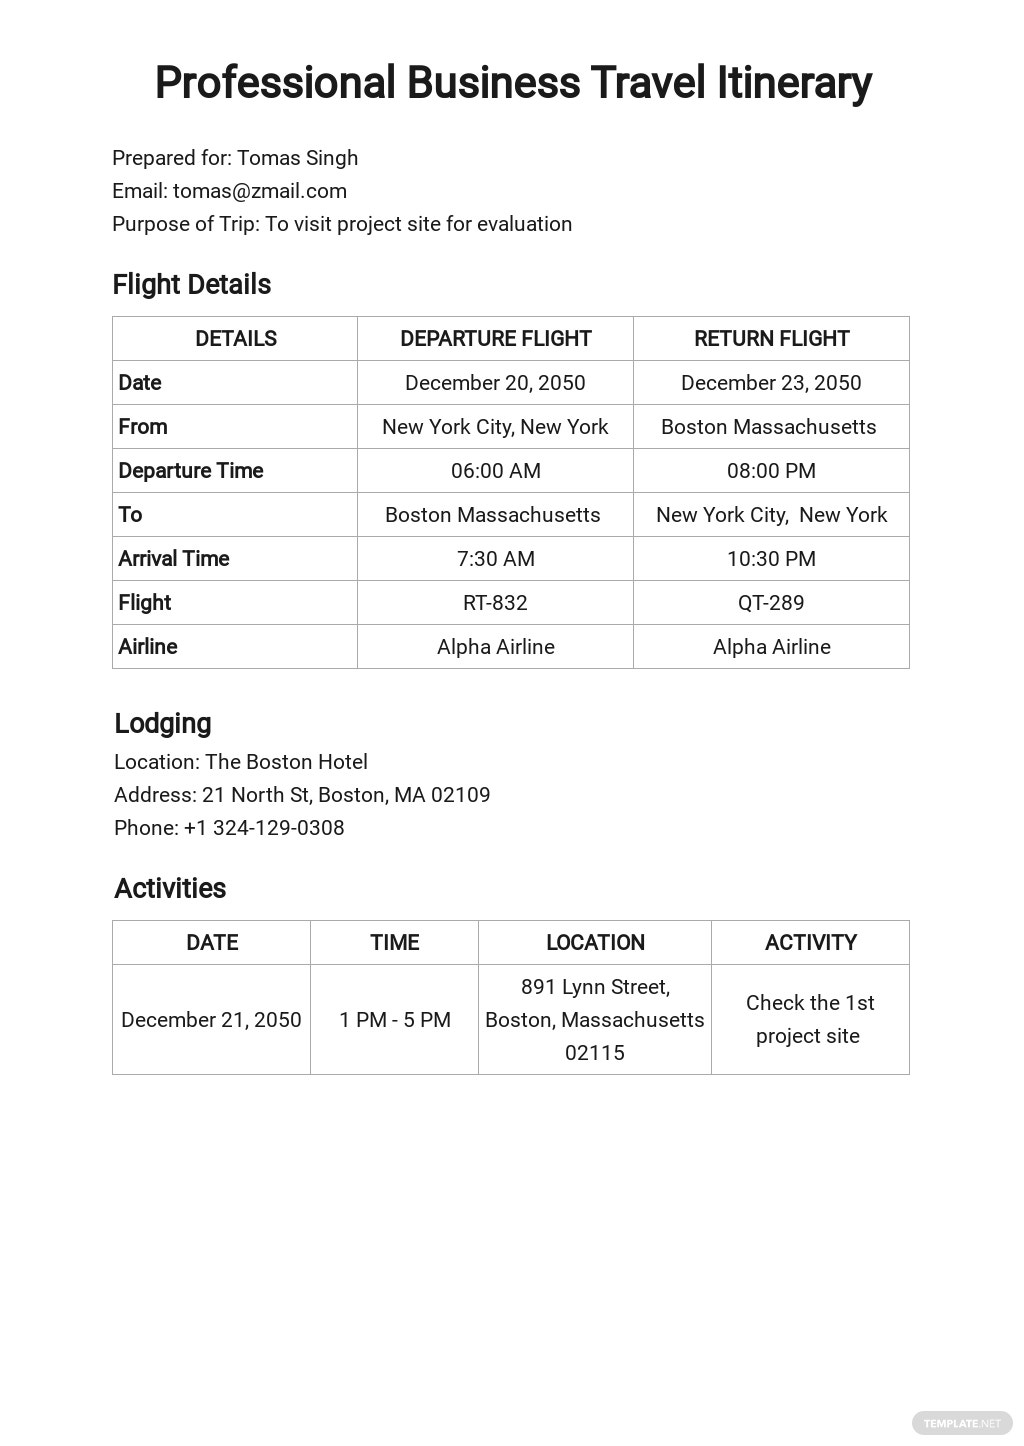 Professional Business Travel Itinerary Template